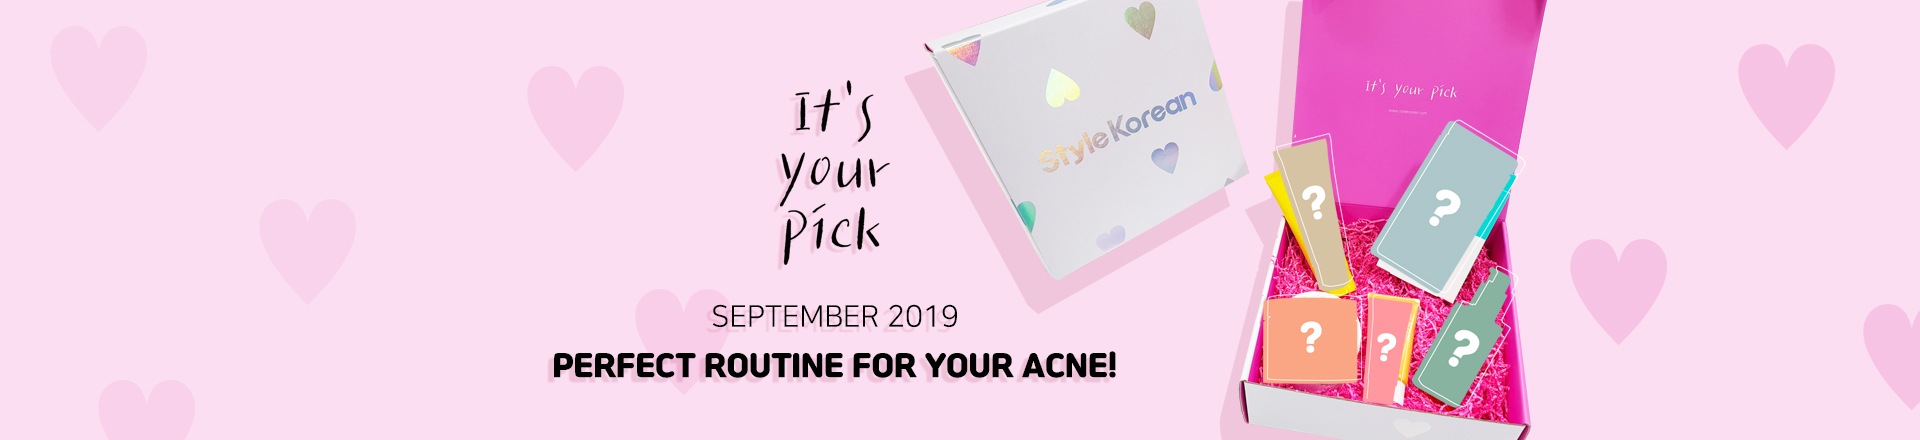 It's Your Pick, Perfect Routine For Your Acne